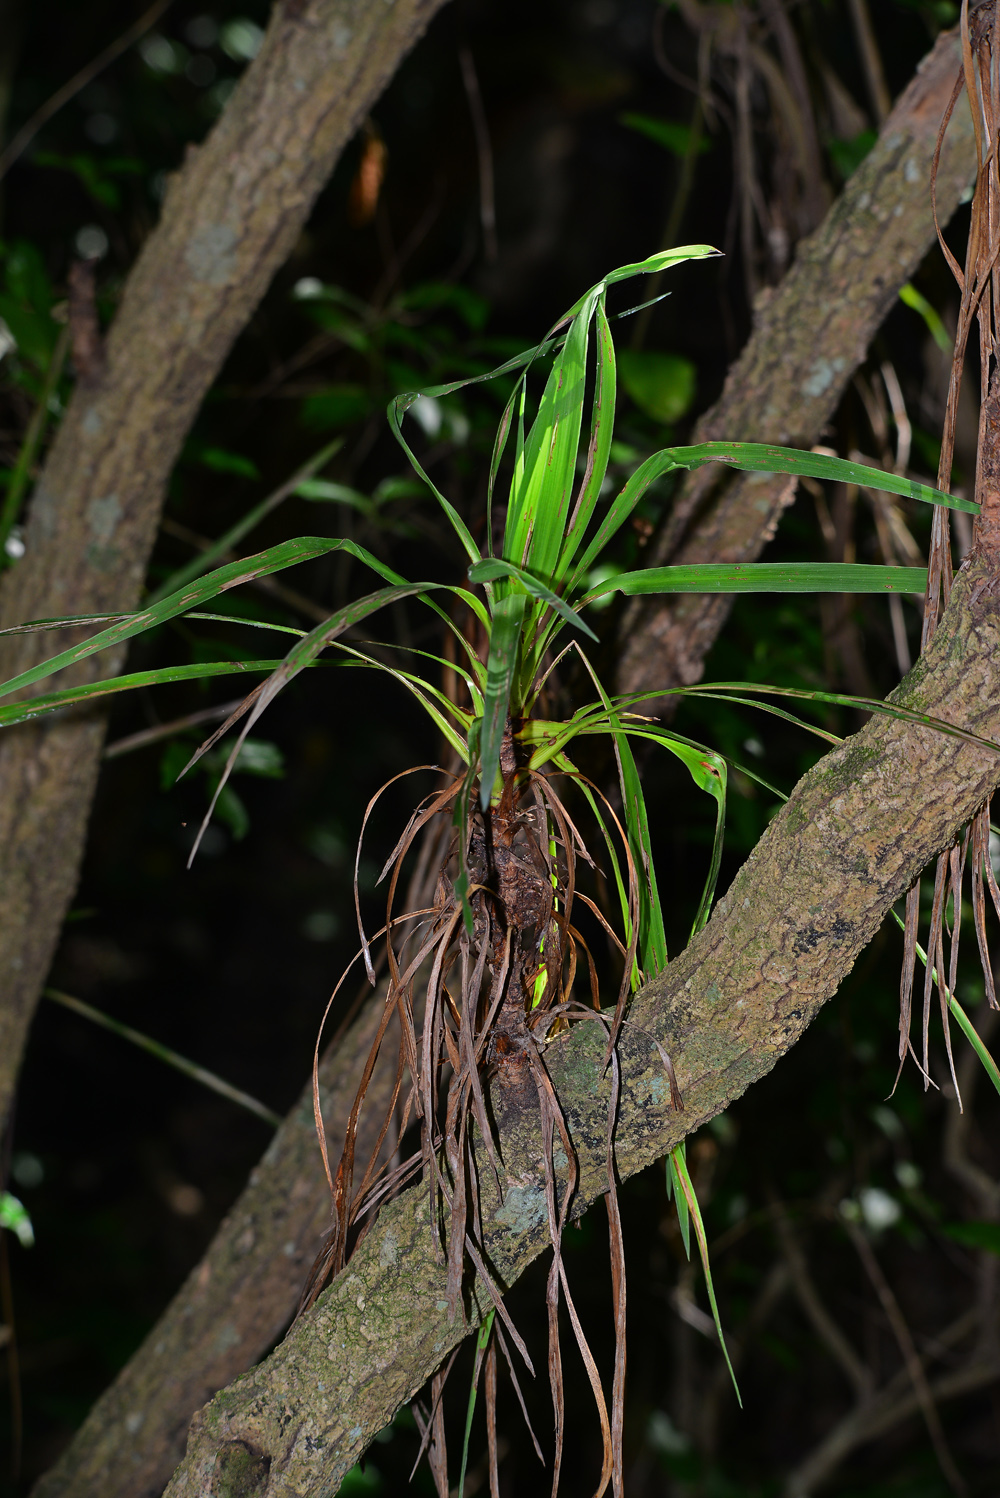 Cabbage tree leaves